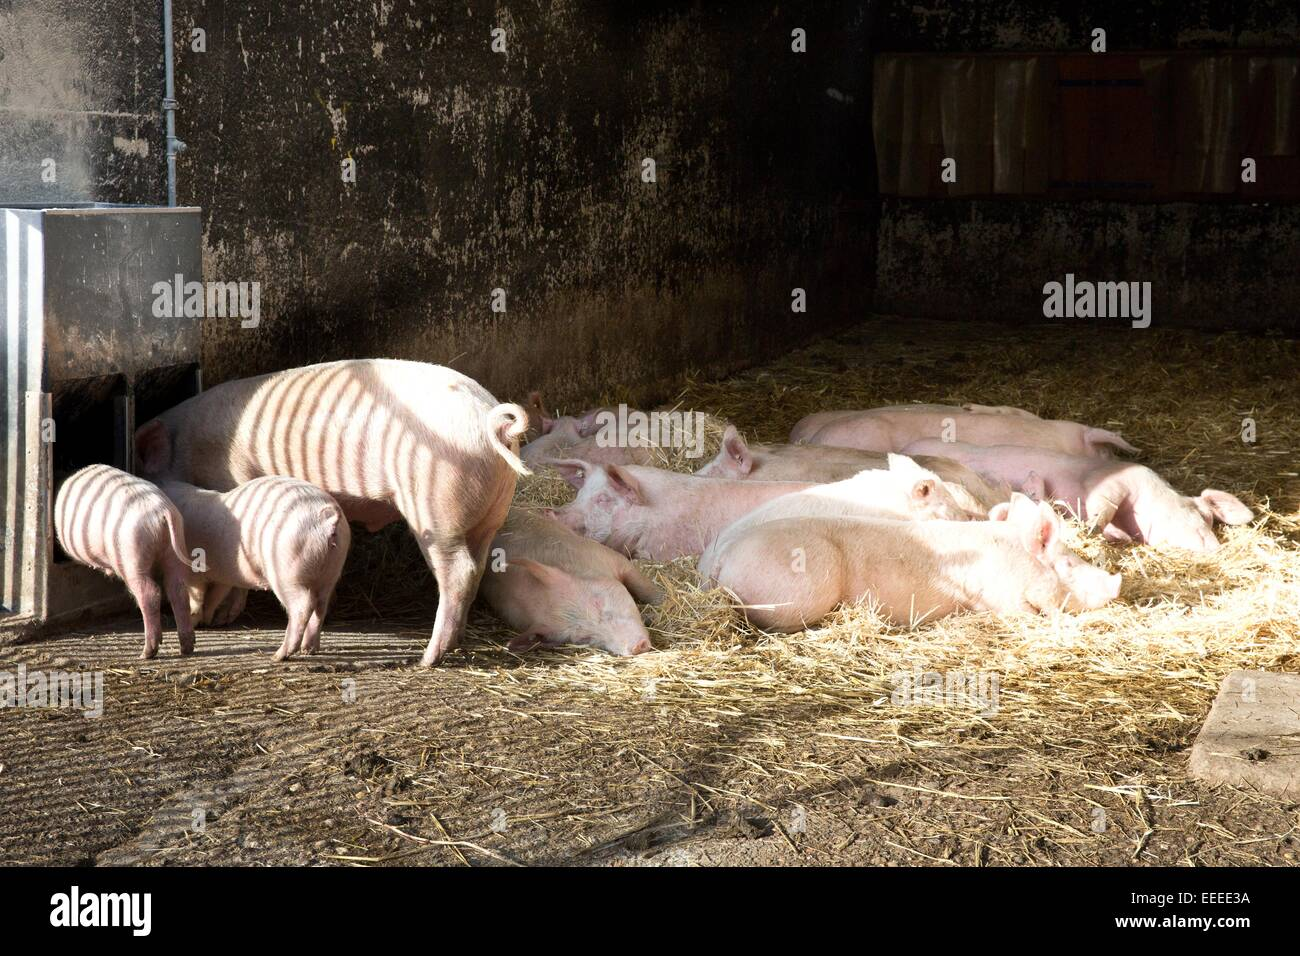 Pigs in an open-air stable, Winnenden, Germany, Jan. 1, 2015. Stock Photo